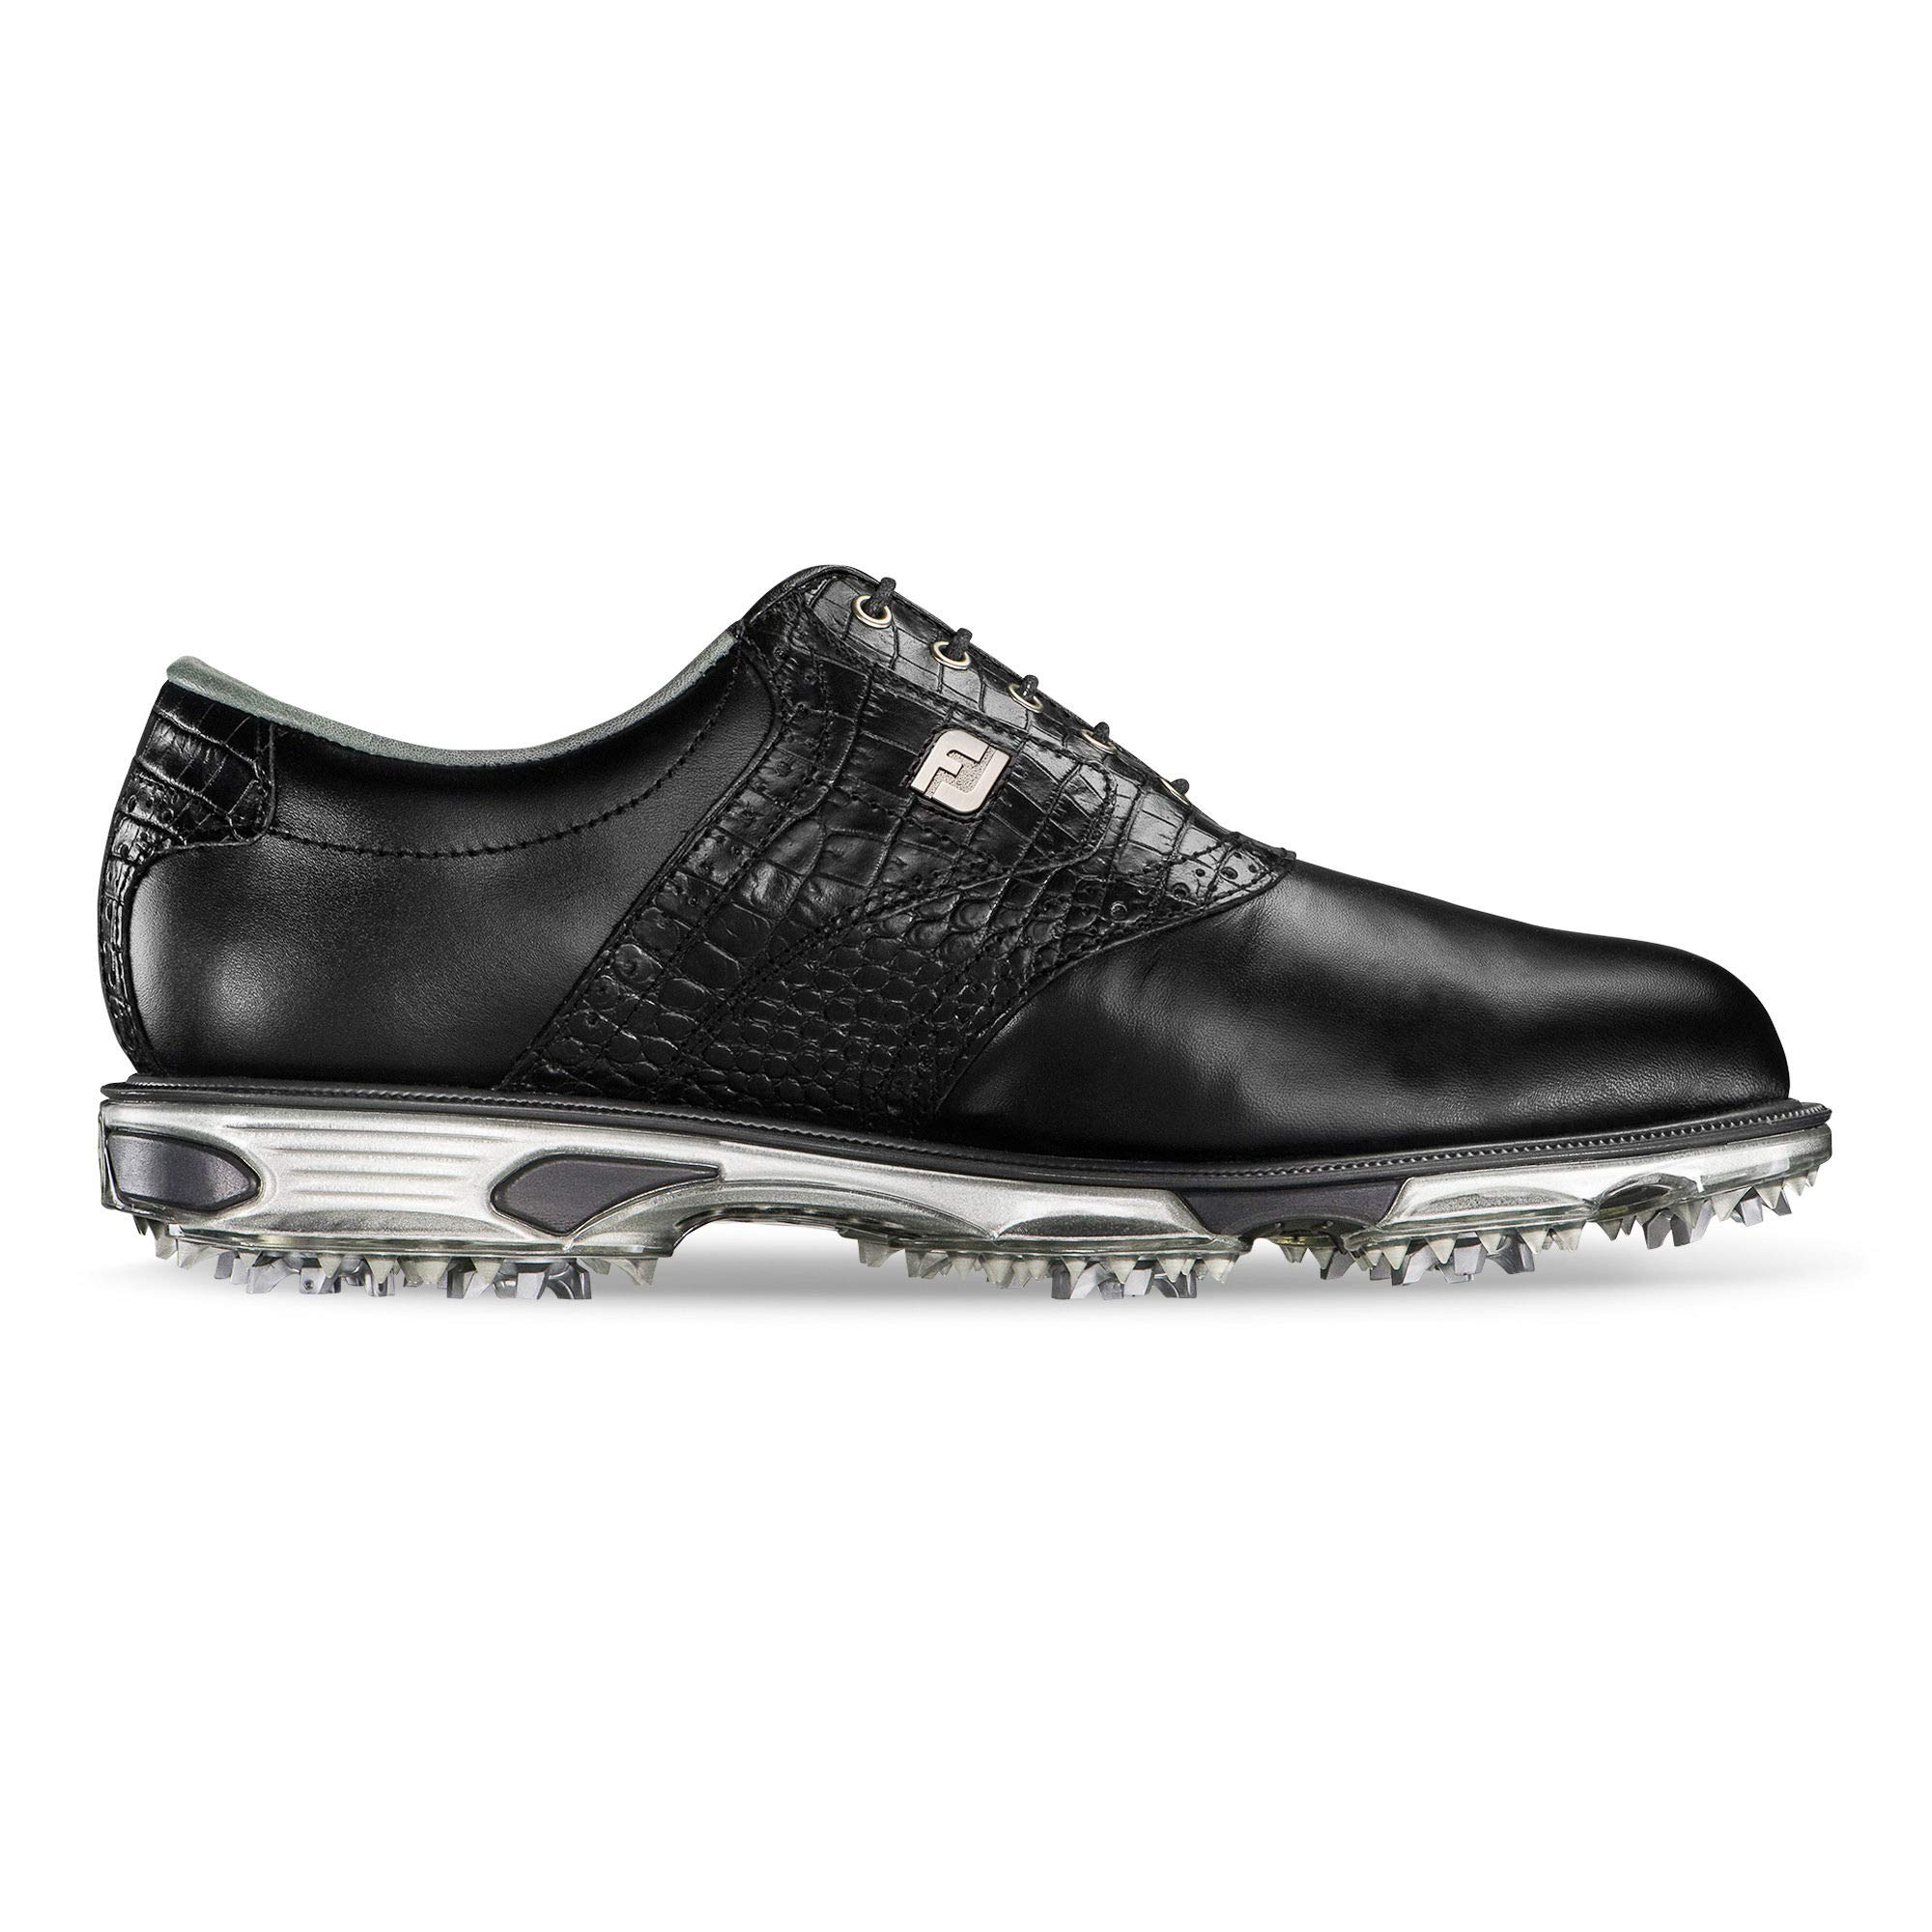 FootJoy Men's DryJoys Tour Golf Shoes, Black/Black Croc, 10.5 W US by FootJoy